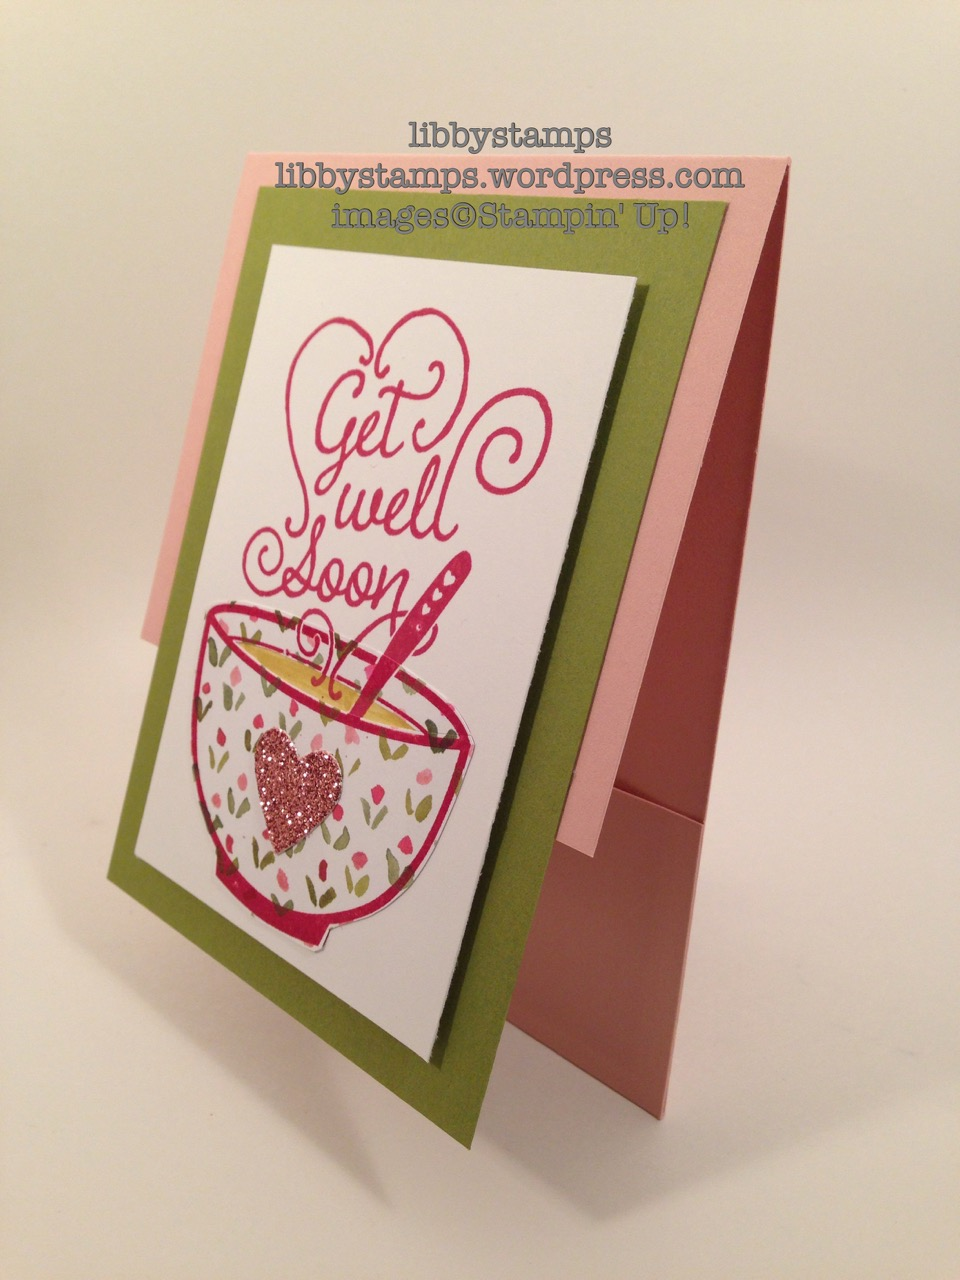 libbystamps, stampin up, Get Well Soup, Hearts Collection Framelits, English Garden DSP, Blushing Bride DSP, soup holder